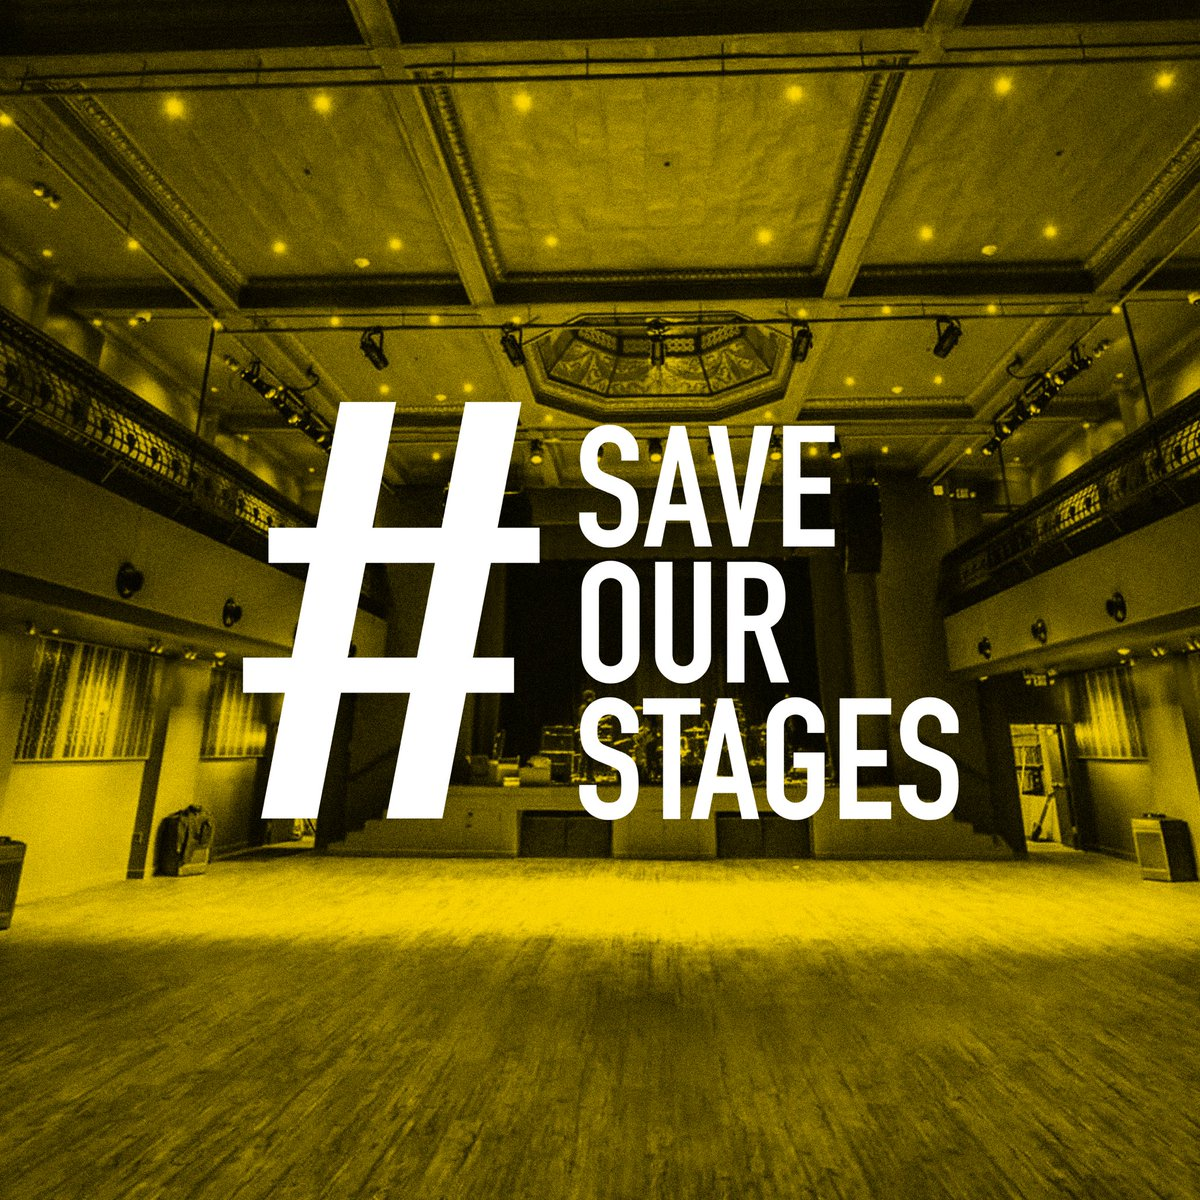 We still need Congress to pass the #SaveOurStagesAct which includes the Heros Small Business Lifeline Act. Independent venues need the relief now! 🖼 @madisonvanhalen & @nivassoc  #SaveOurStages #ReliefNow #DoNotAbandonUs #NIVA #telegraphhillrecords #congress #independentvenue https://t.co/4yr3qHEHSo